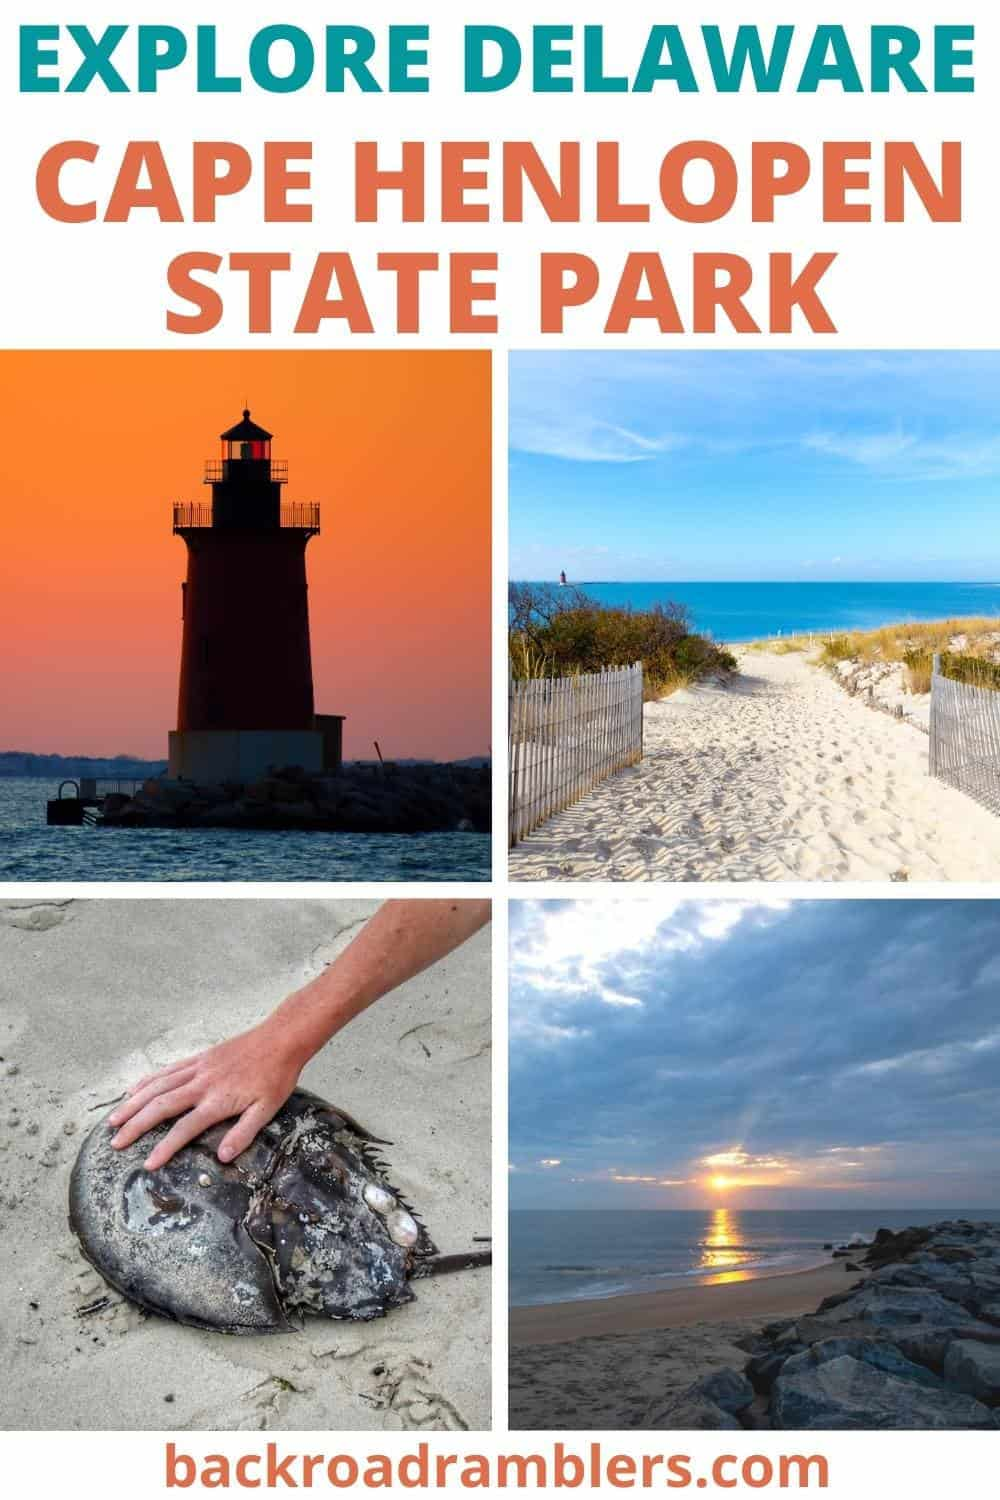 A collage of photos featuring Cape Henlopen State Park. Text overlay: Explore Delaware - Cape Henlopen State Park